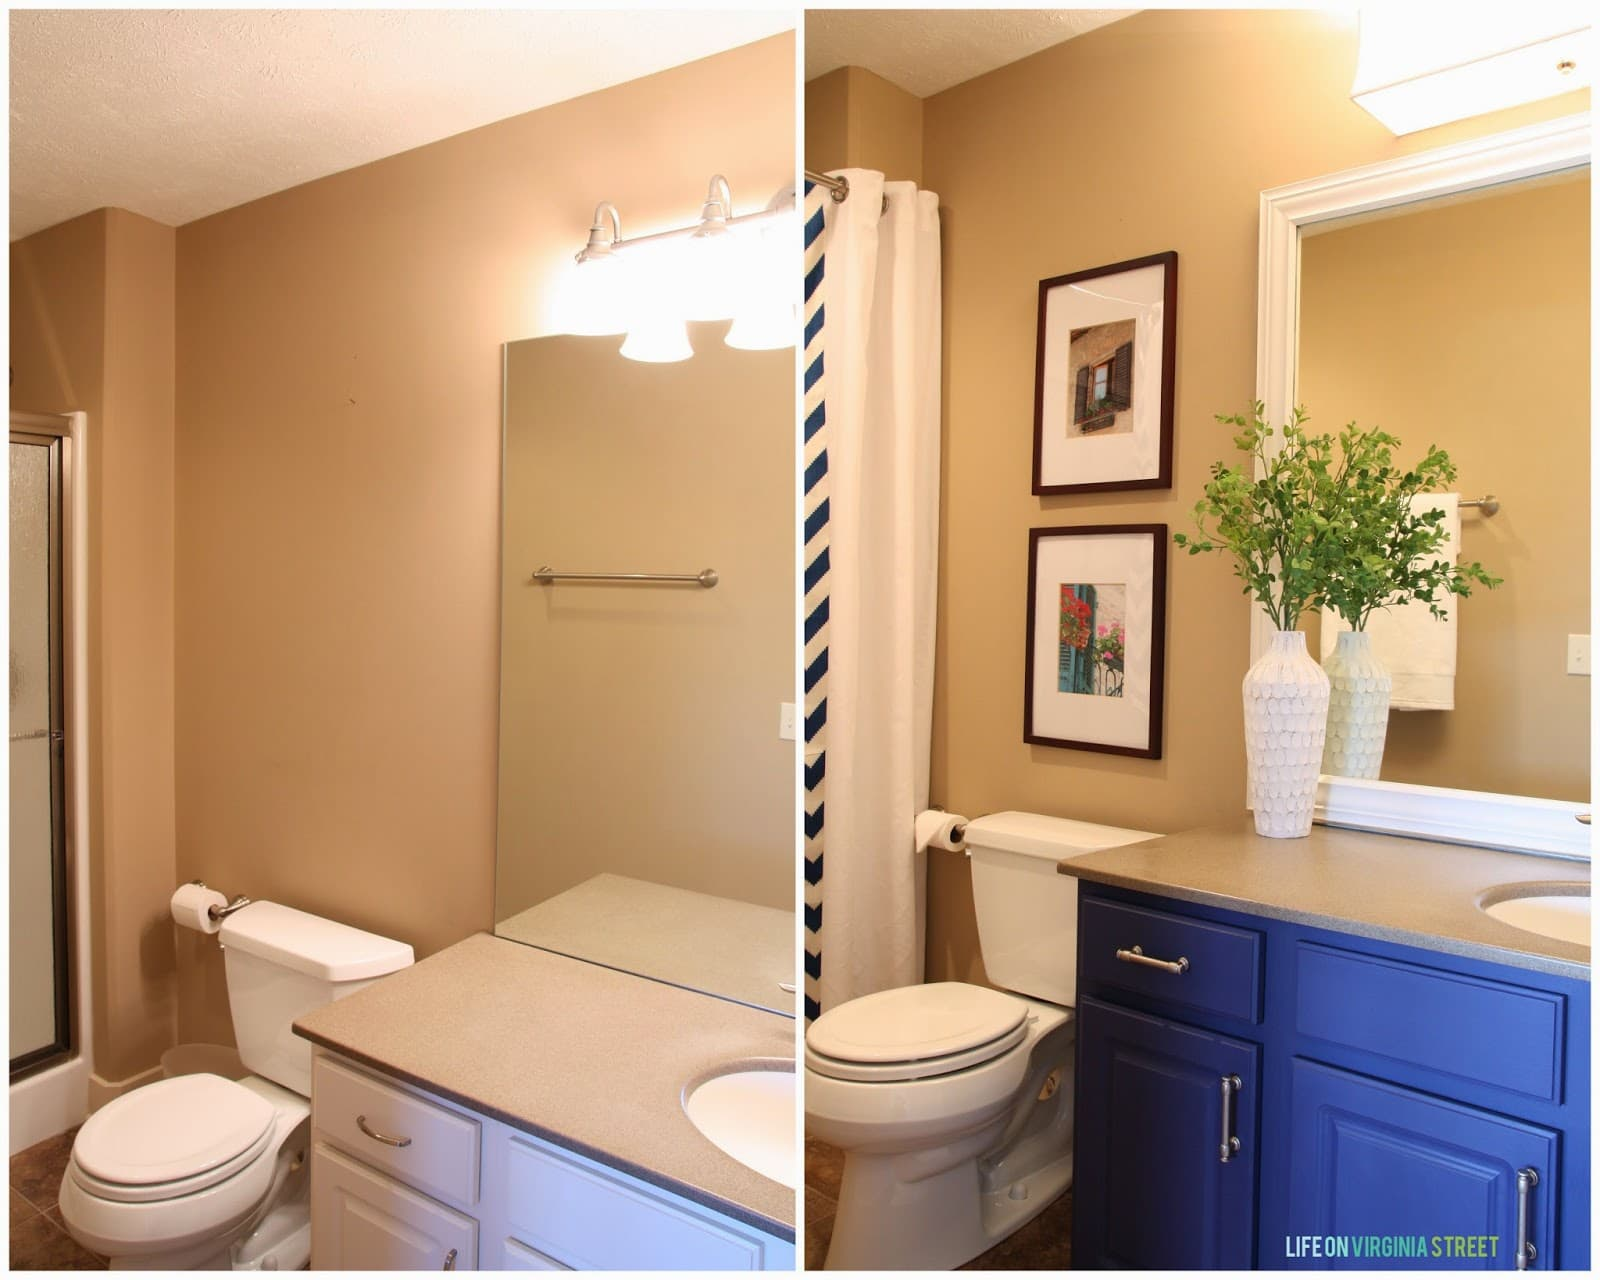 Guest Bathroom Tutorials Lighting Framing A Builder Grade Mirror Details Life On Virginia